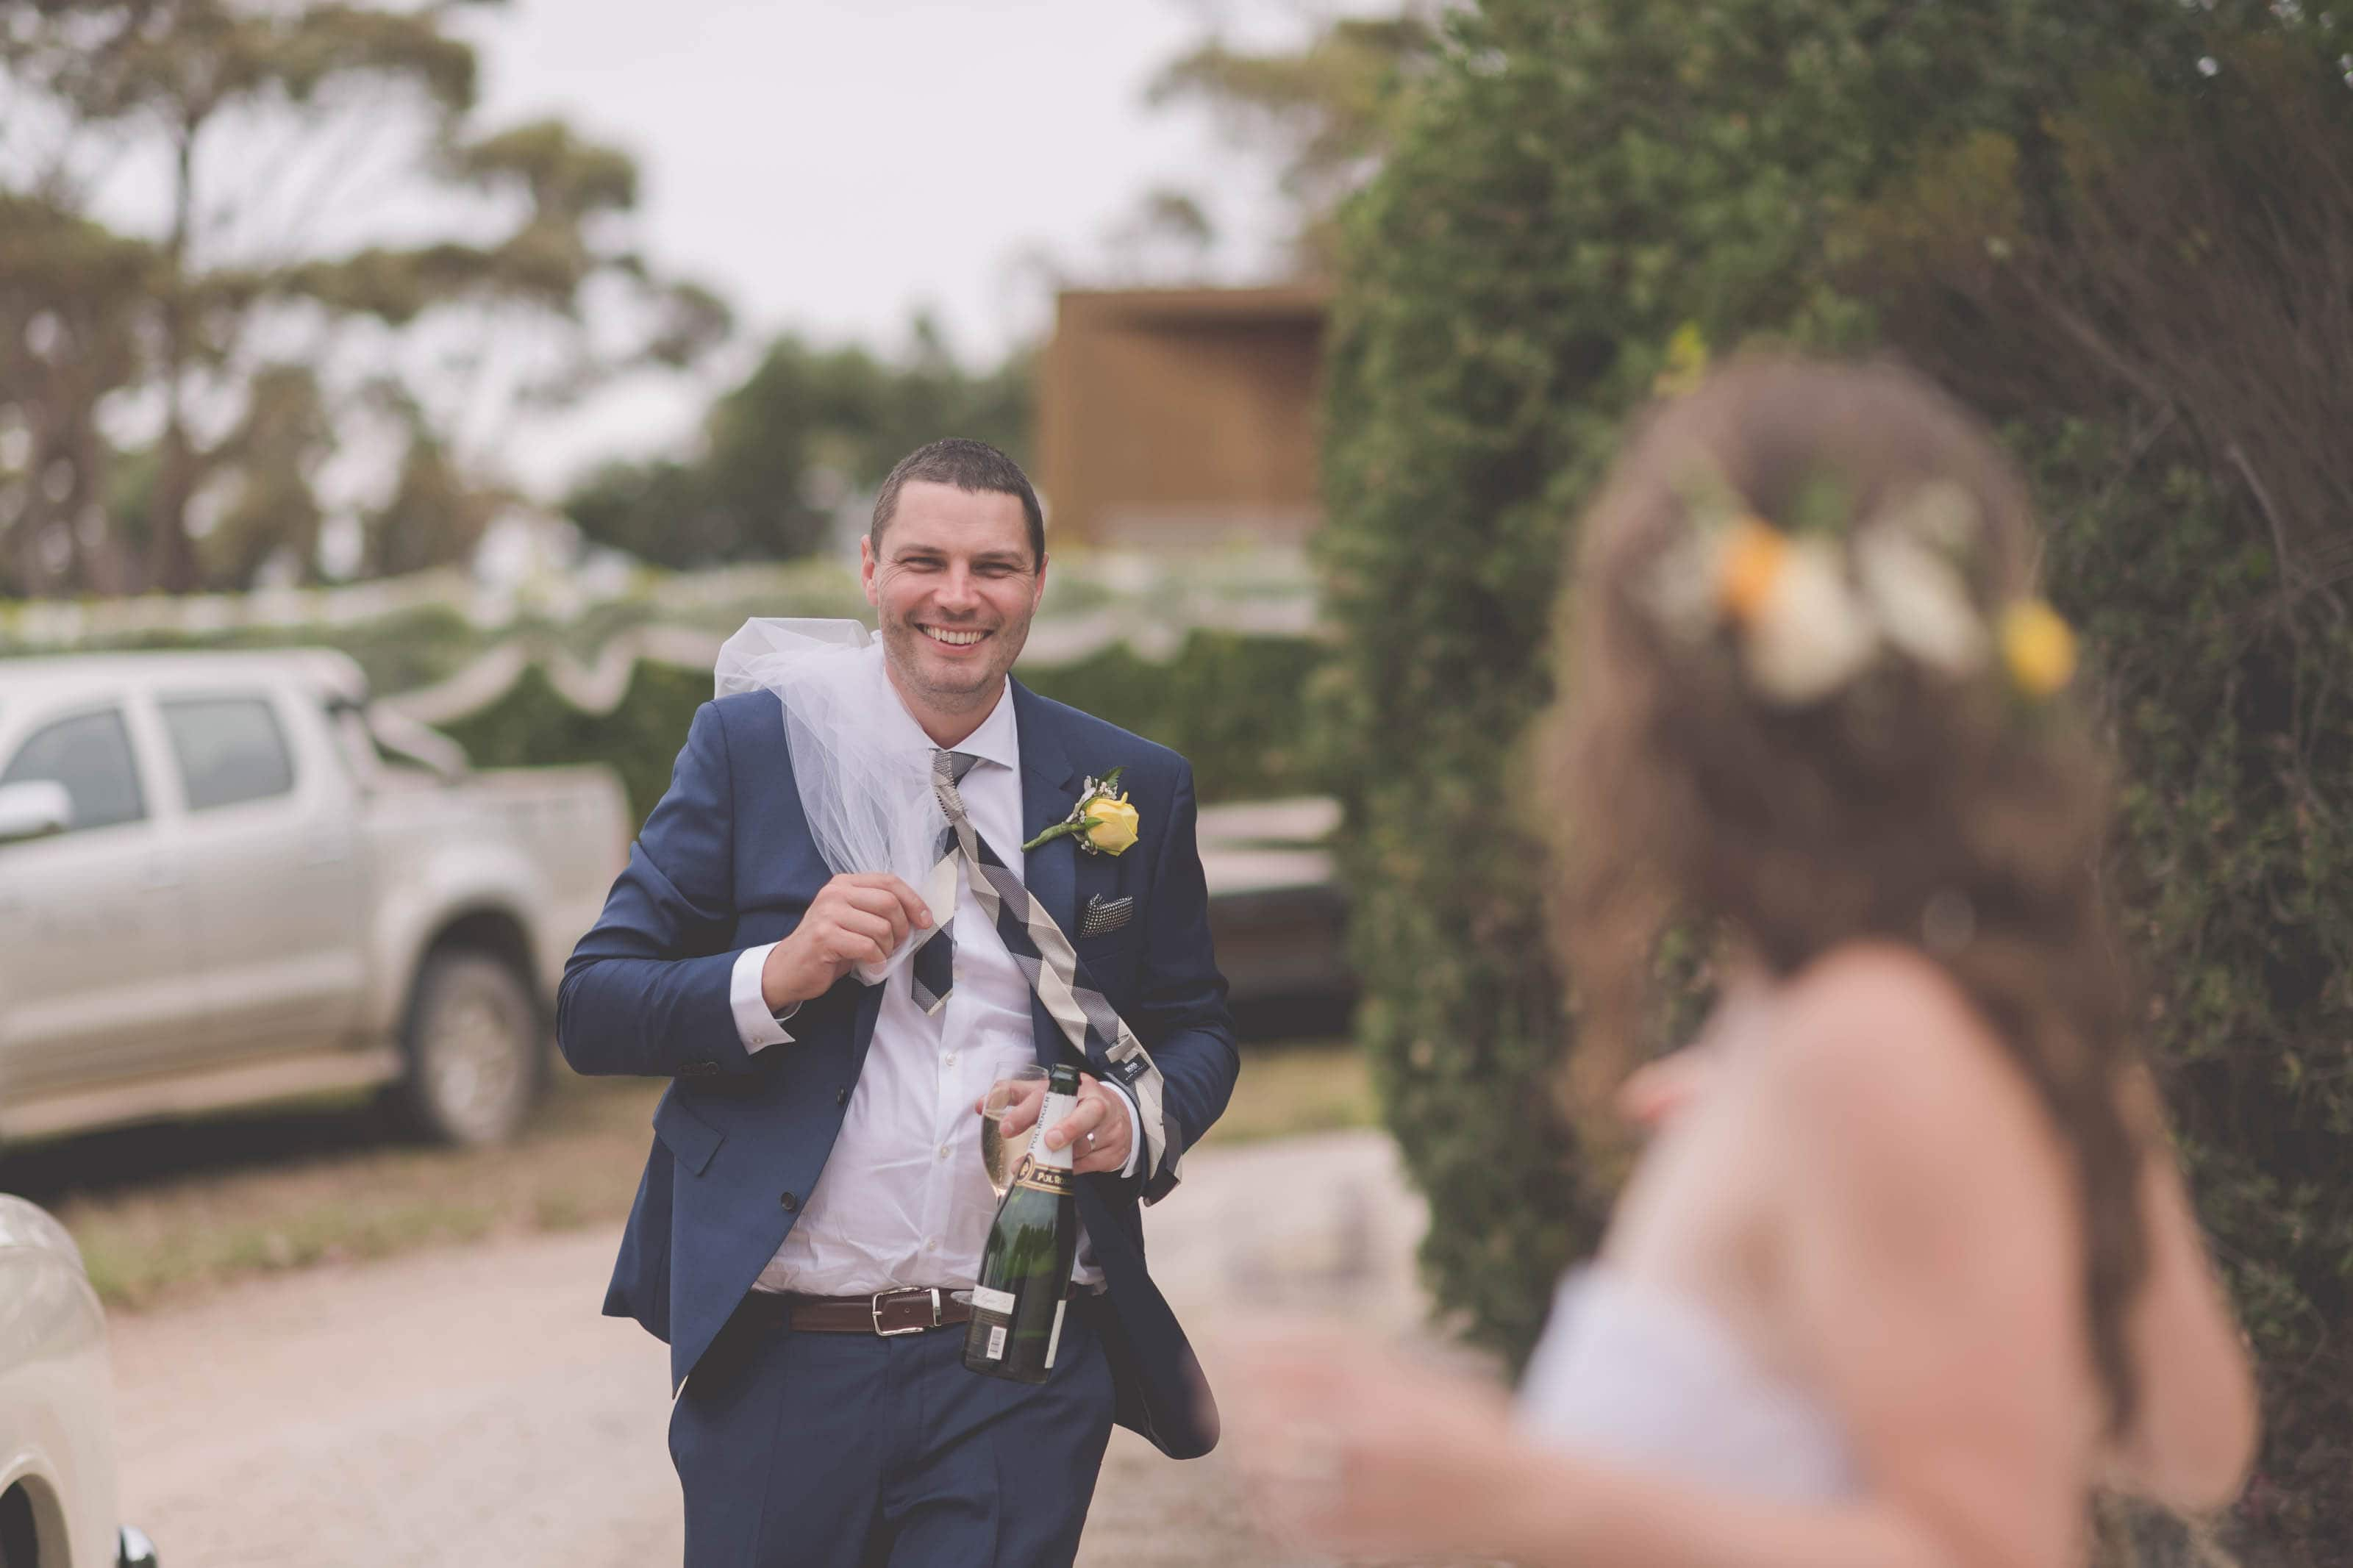 Wedding Photography Melbourne by Pause The Moment - Candid Melbourne wedding Photography of a groom - Paringa Estate Wedding Photographer